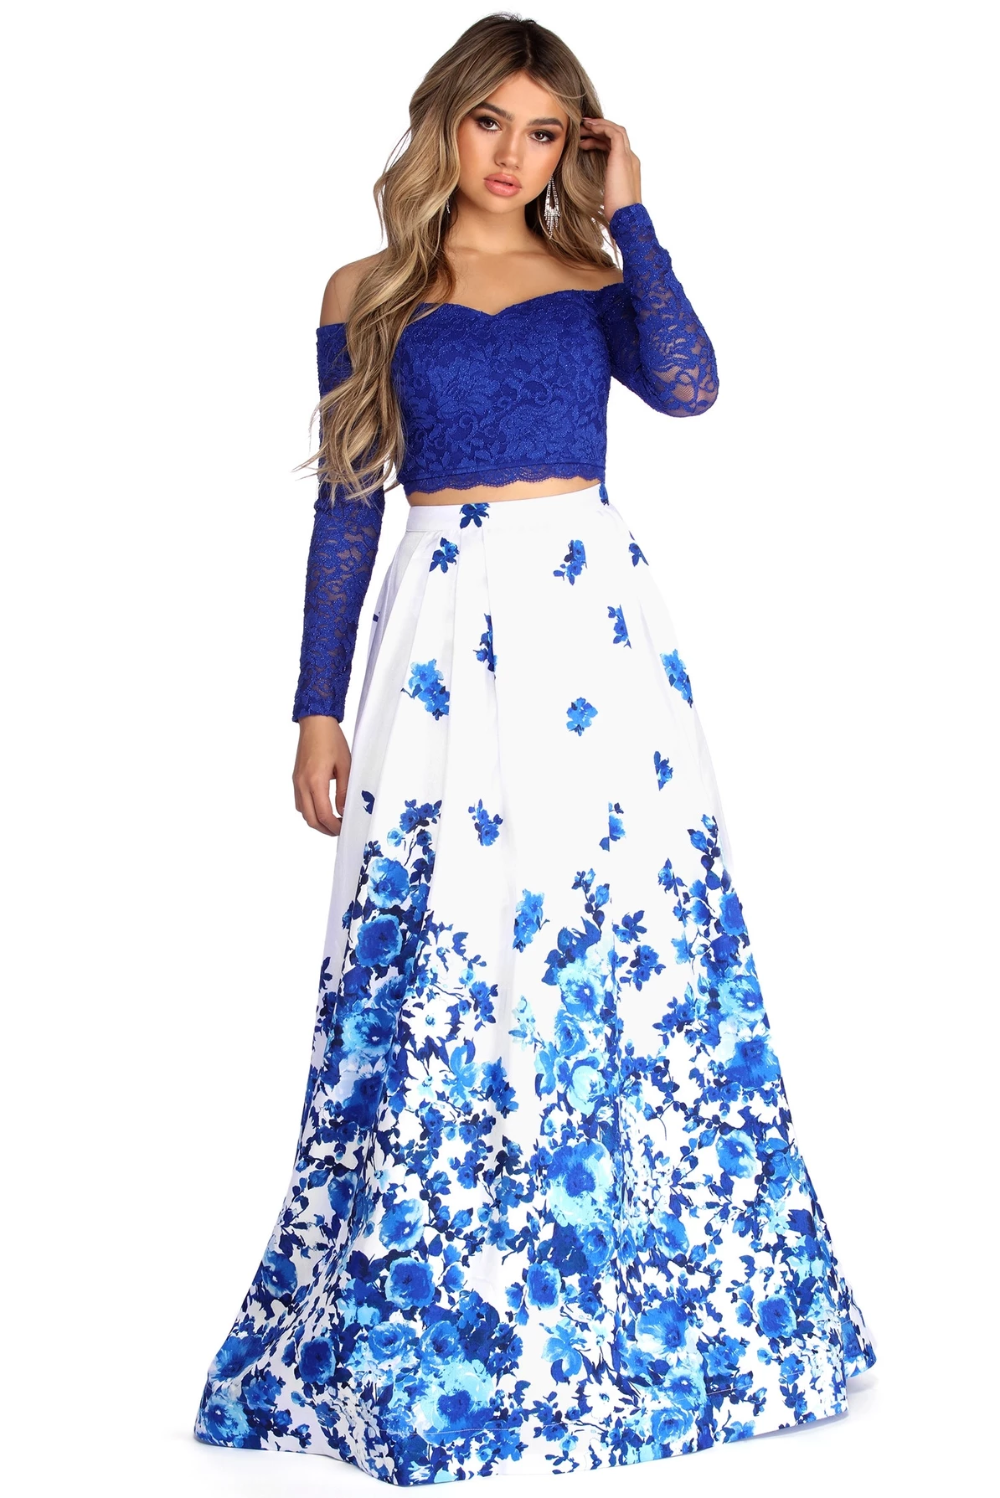 Aline Formal Floral Two Piece Dress In 2021 Piece Dress Floral Prom Dresses Two Piece Dress [ 1498 x 1000 Pixel ]